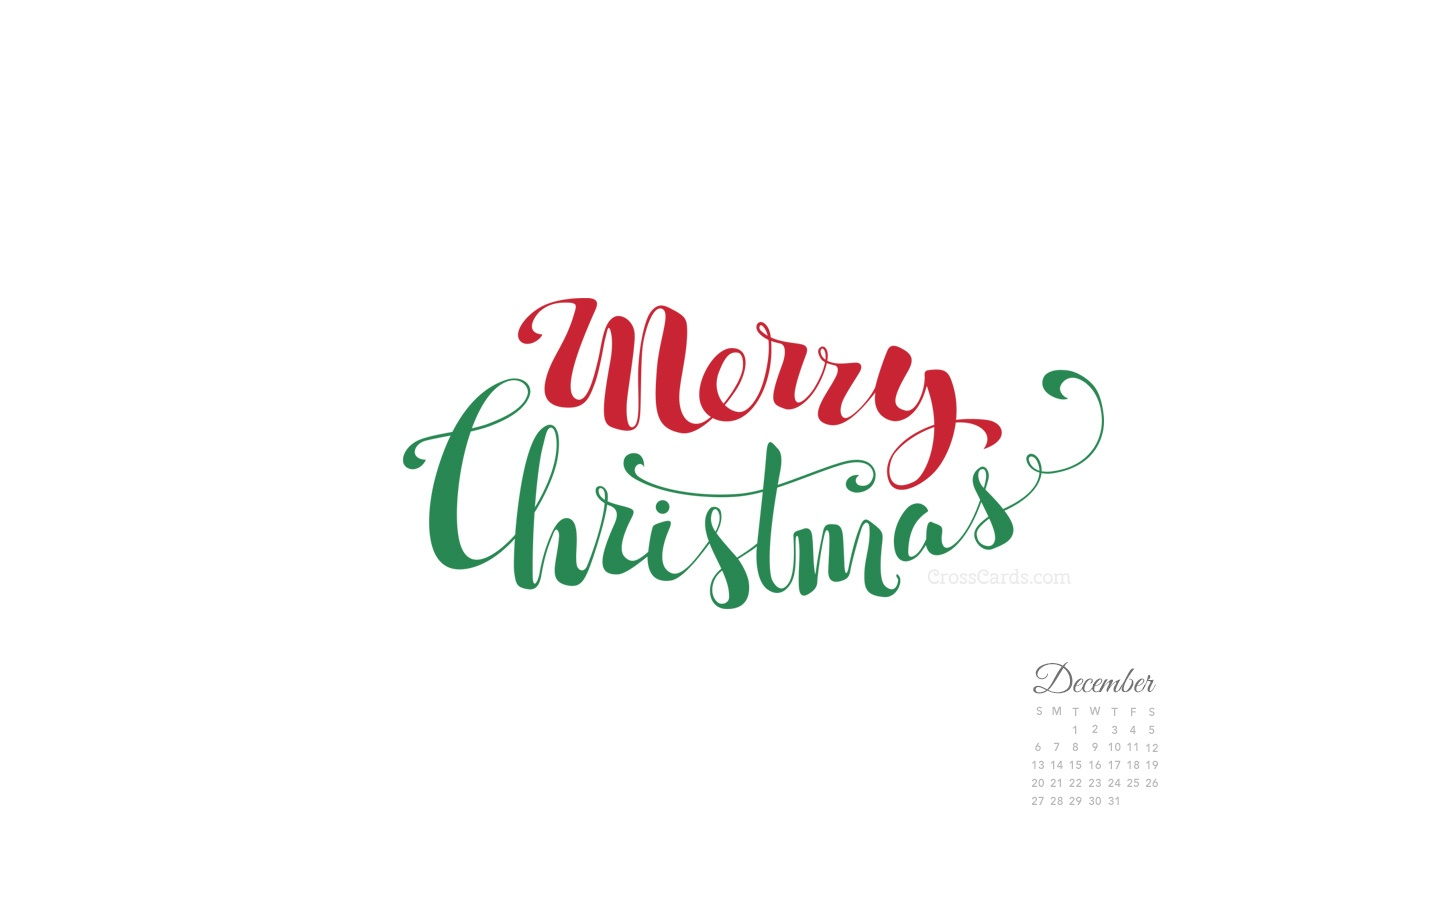 Animated Merry Christmas Calligraphy | Search Results | Calendar 2015